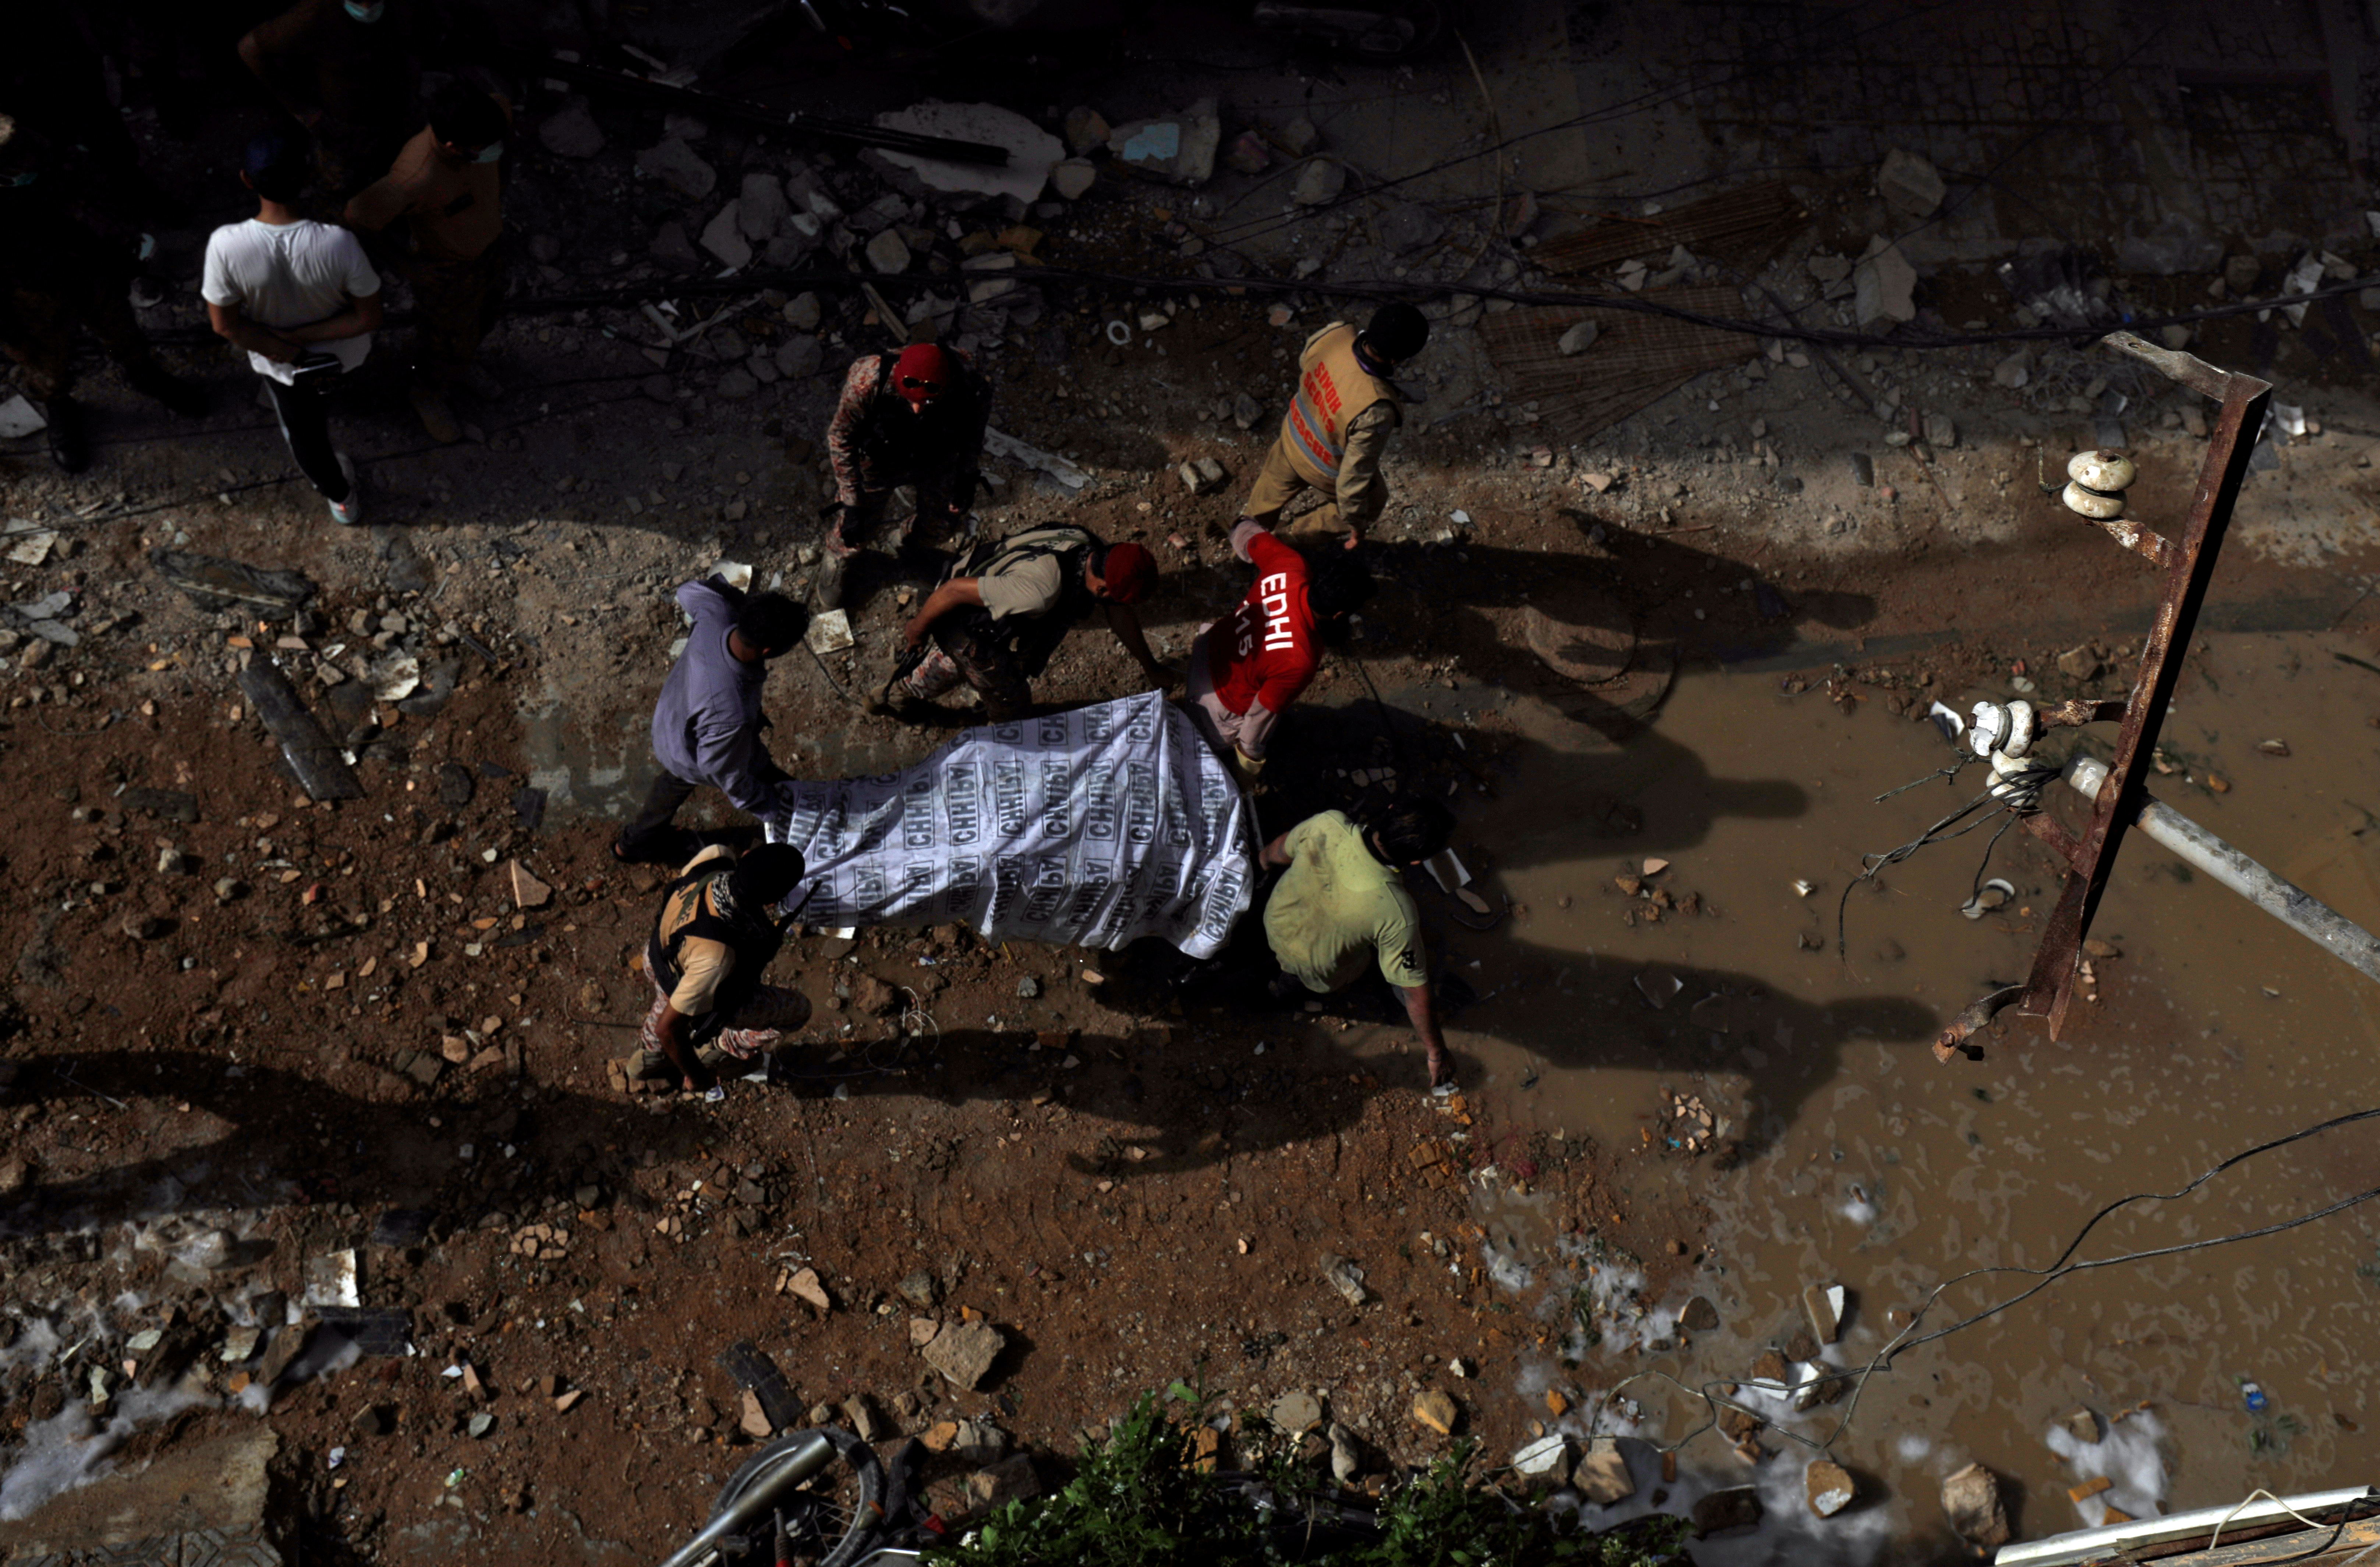 Rescue workers carry a victim at the site of a passenger plane crash in a residential area near an airport in Karachi, Pakistan May 22, 2020. REUTERS/Akhtar Soomro - RC2OTG90IHMN